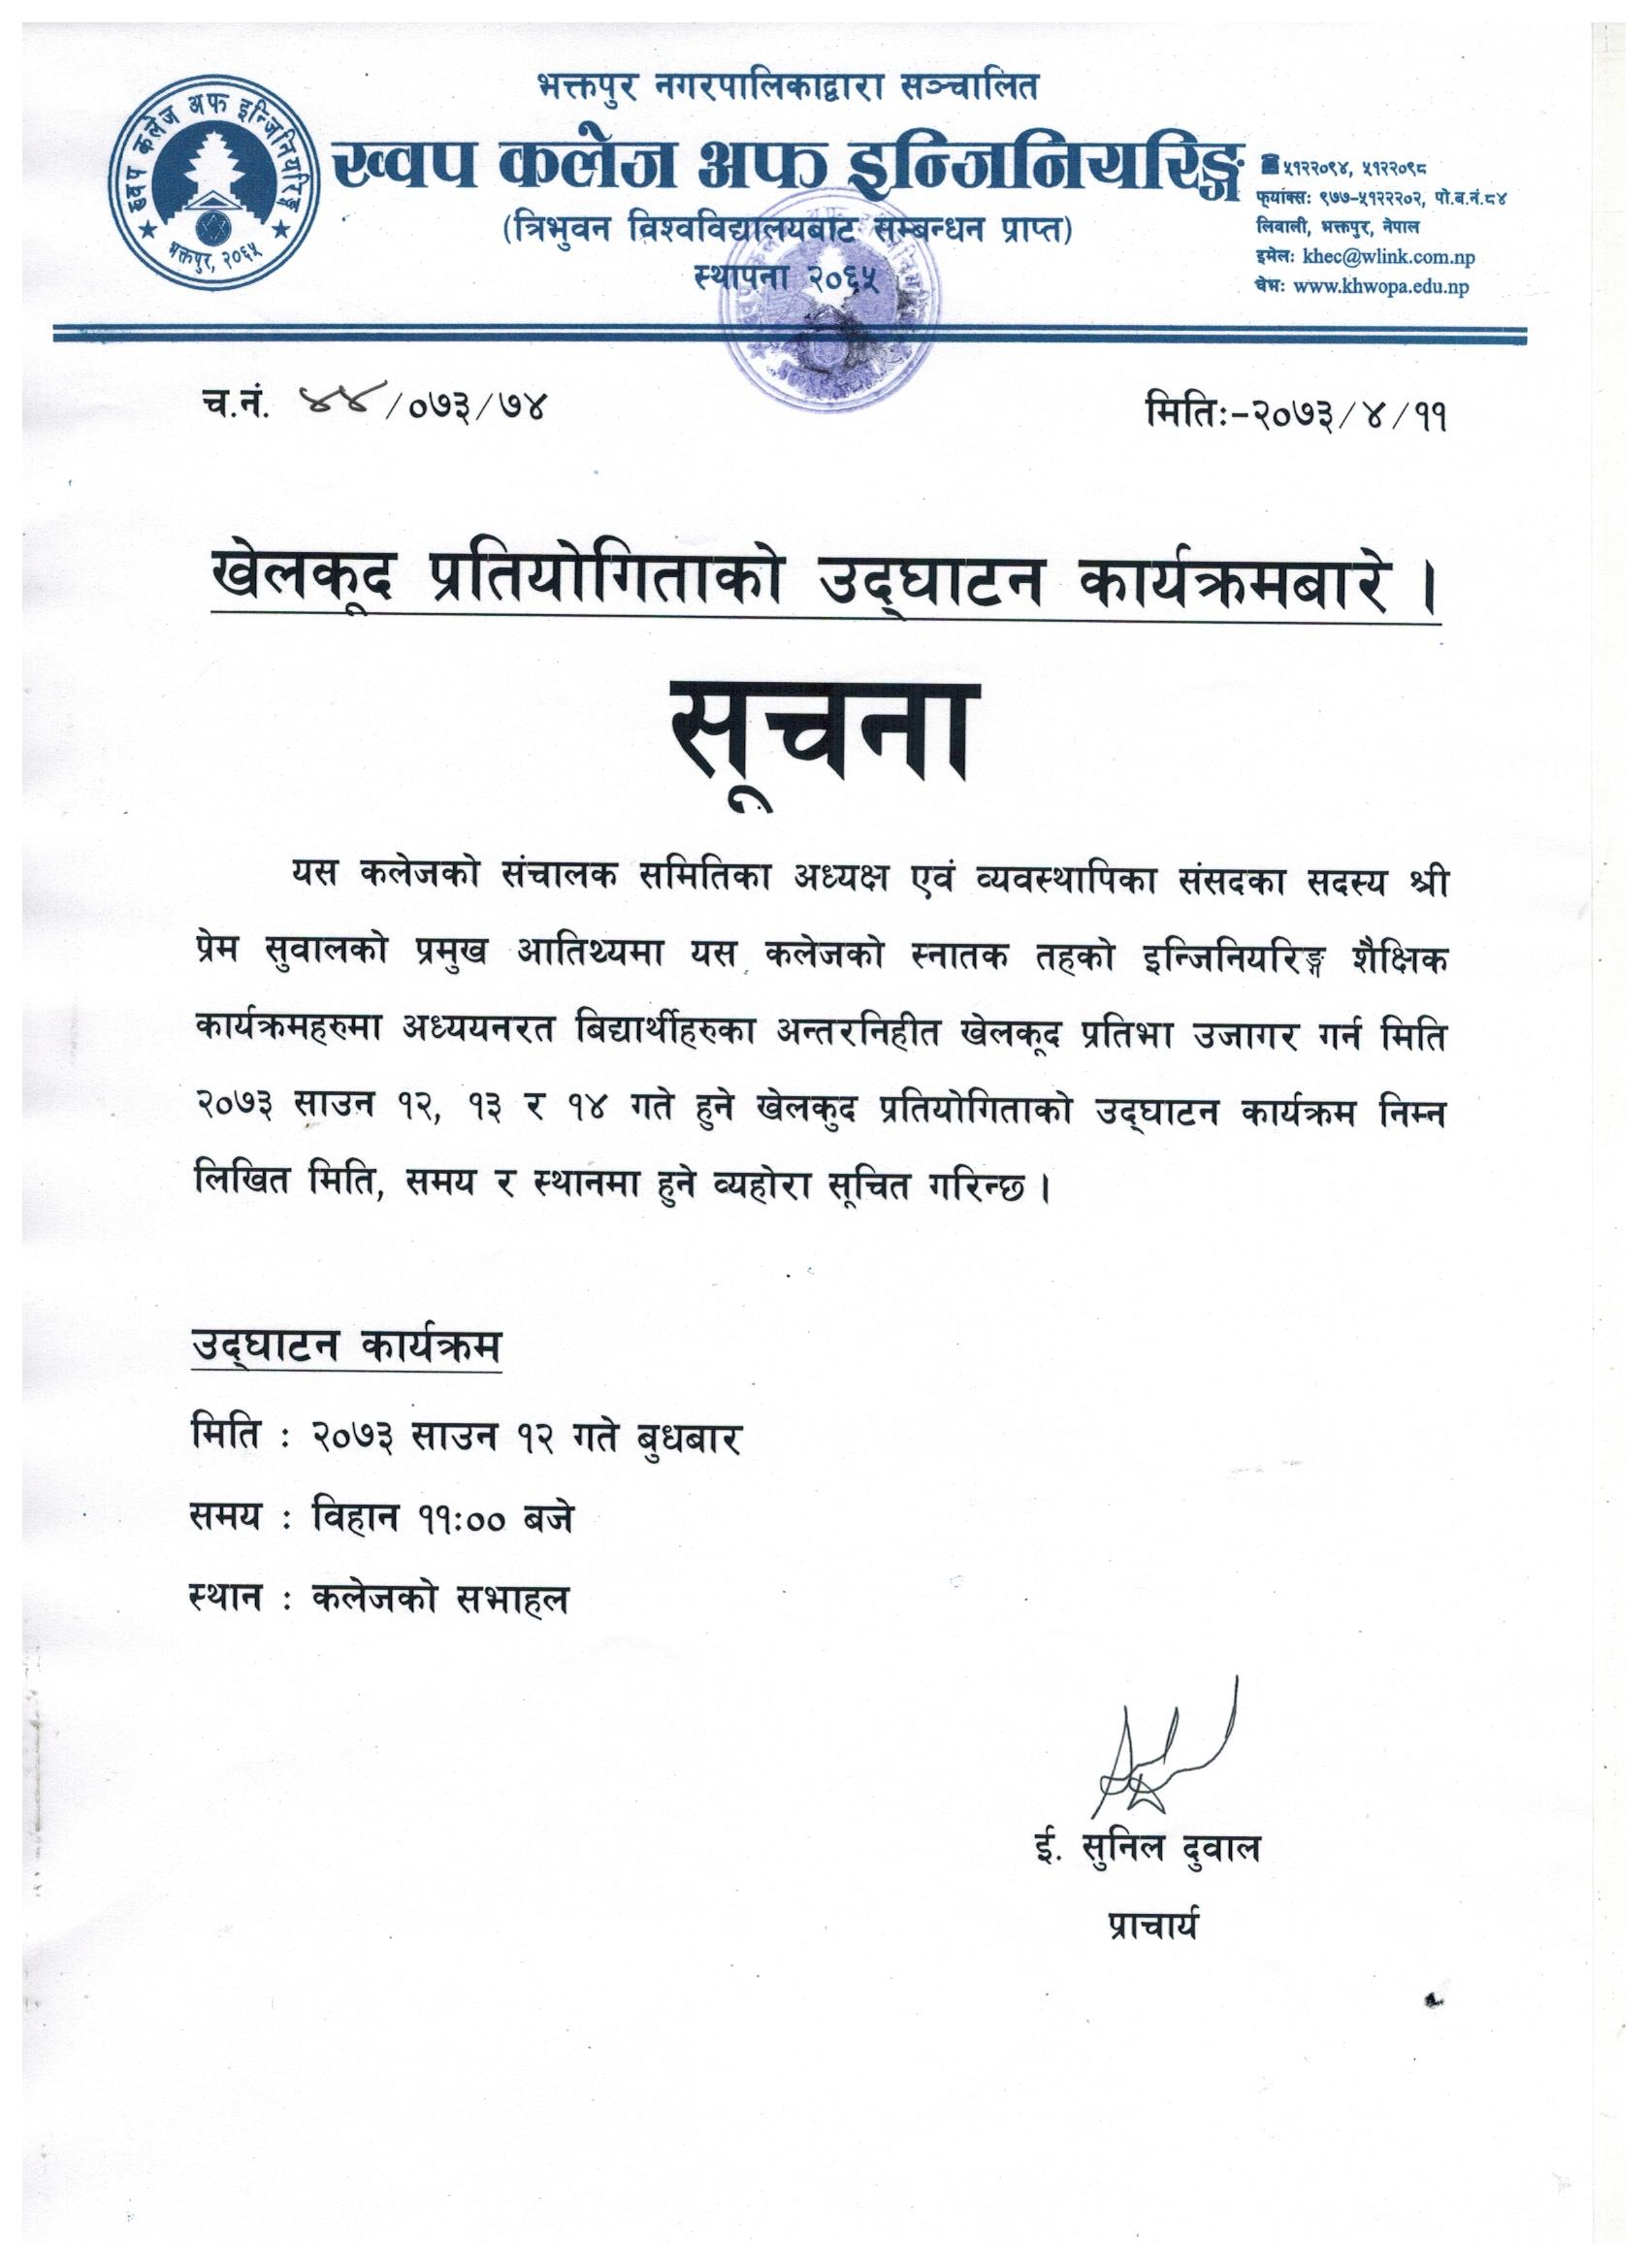 Notice for the opening ceremony of sports competition 2073